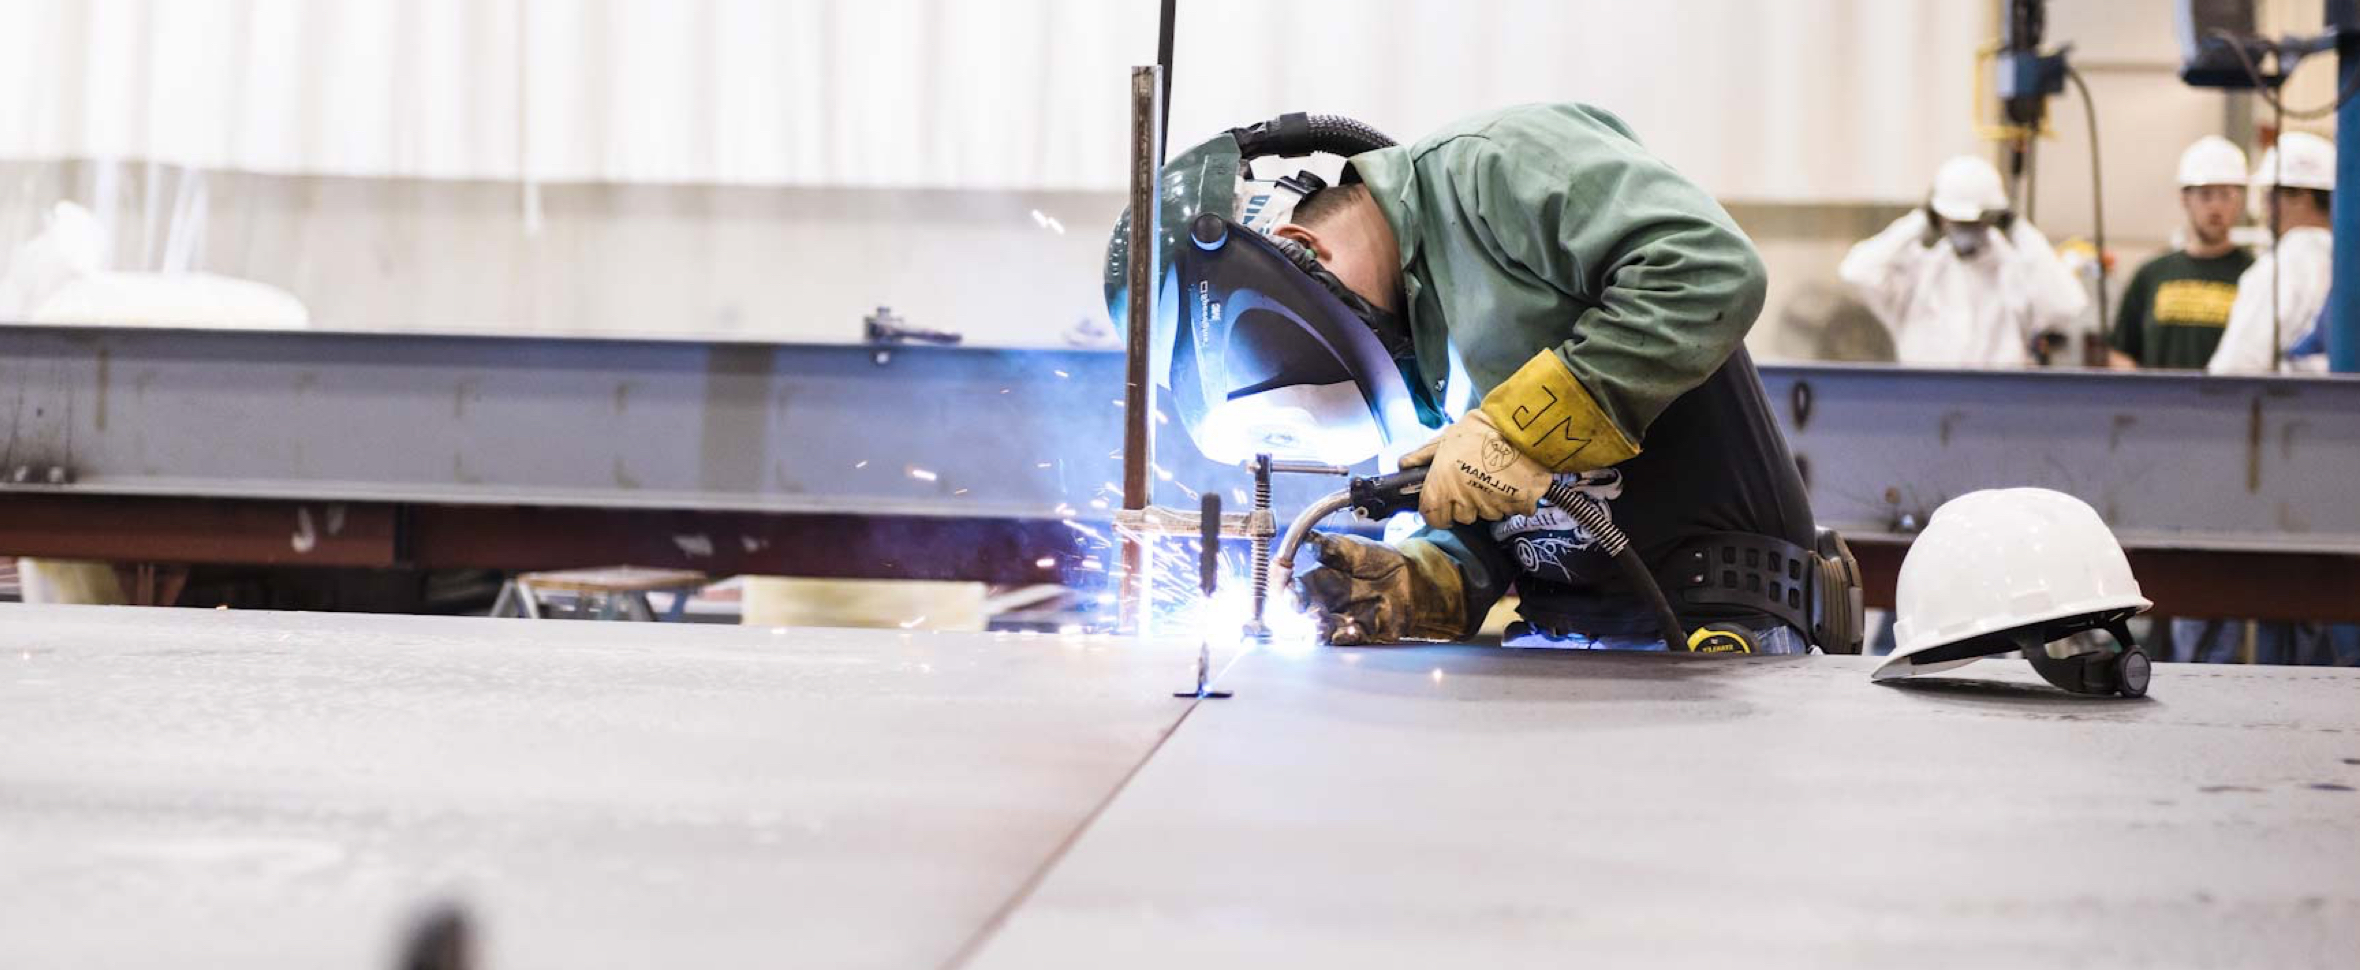 Safety - Welder in protective gear welding steel